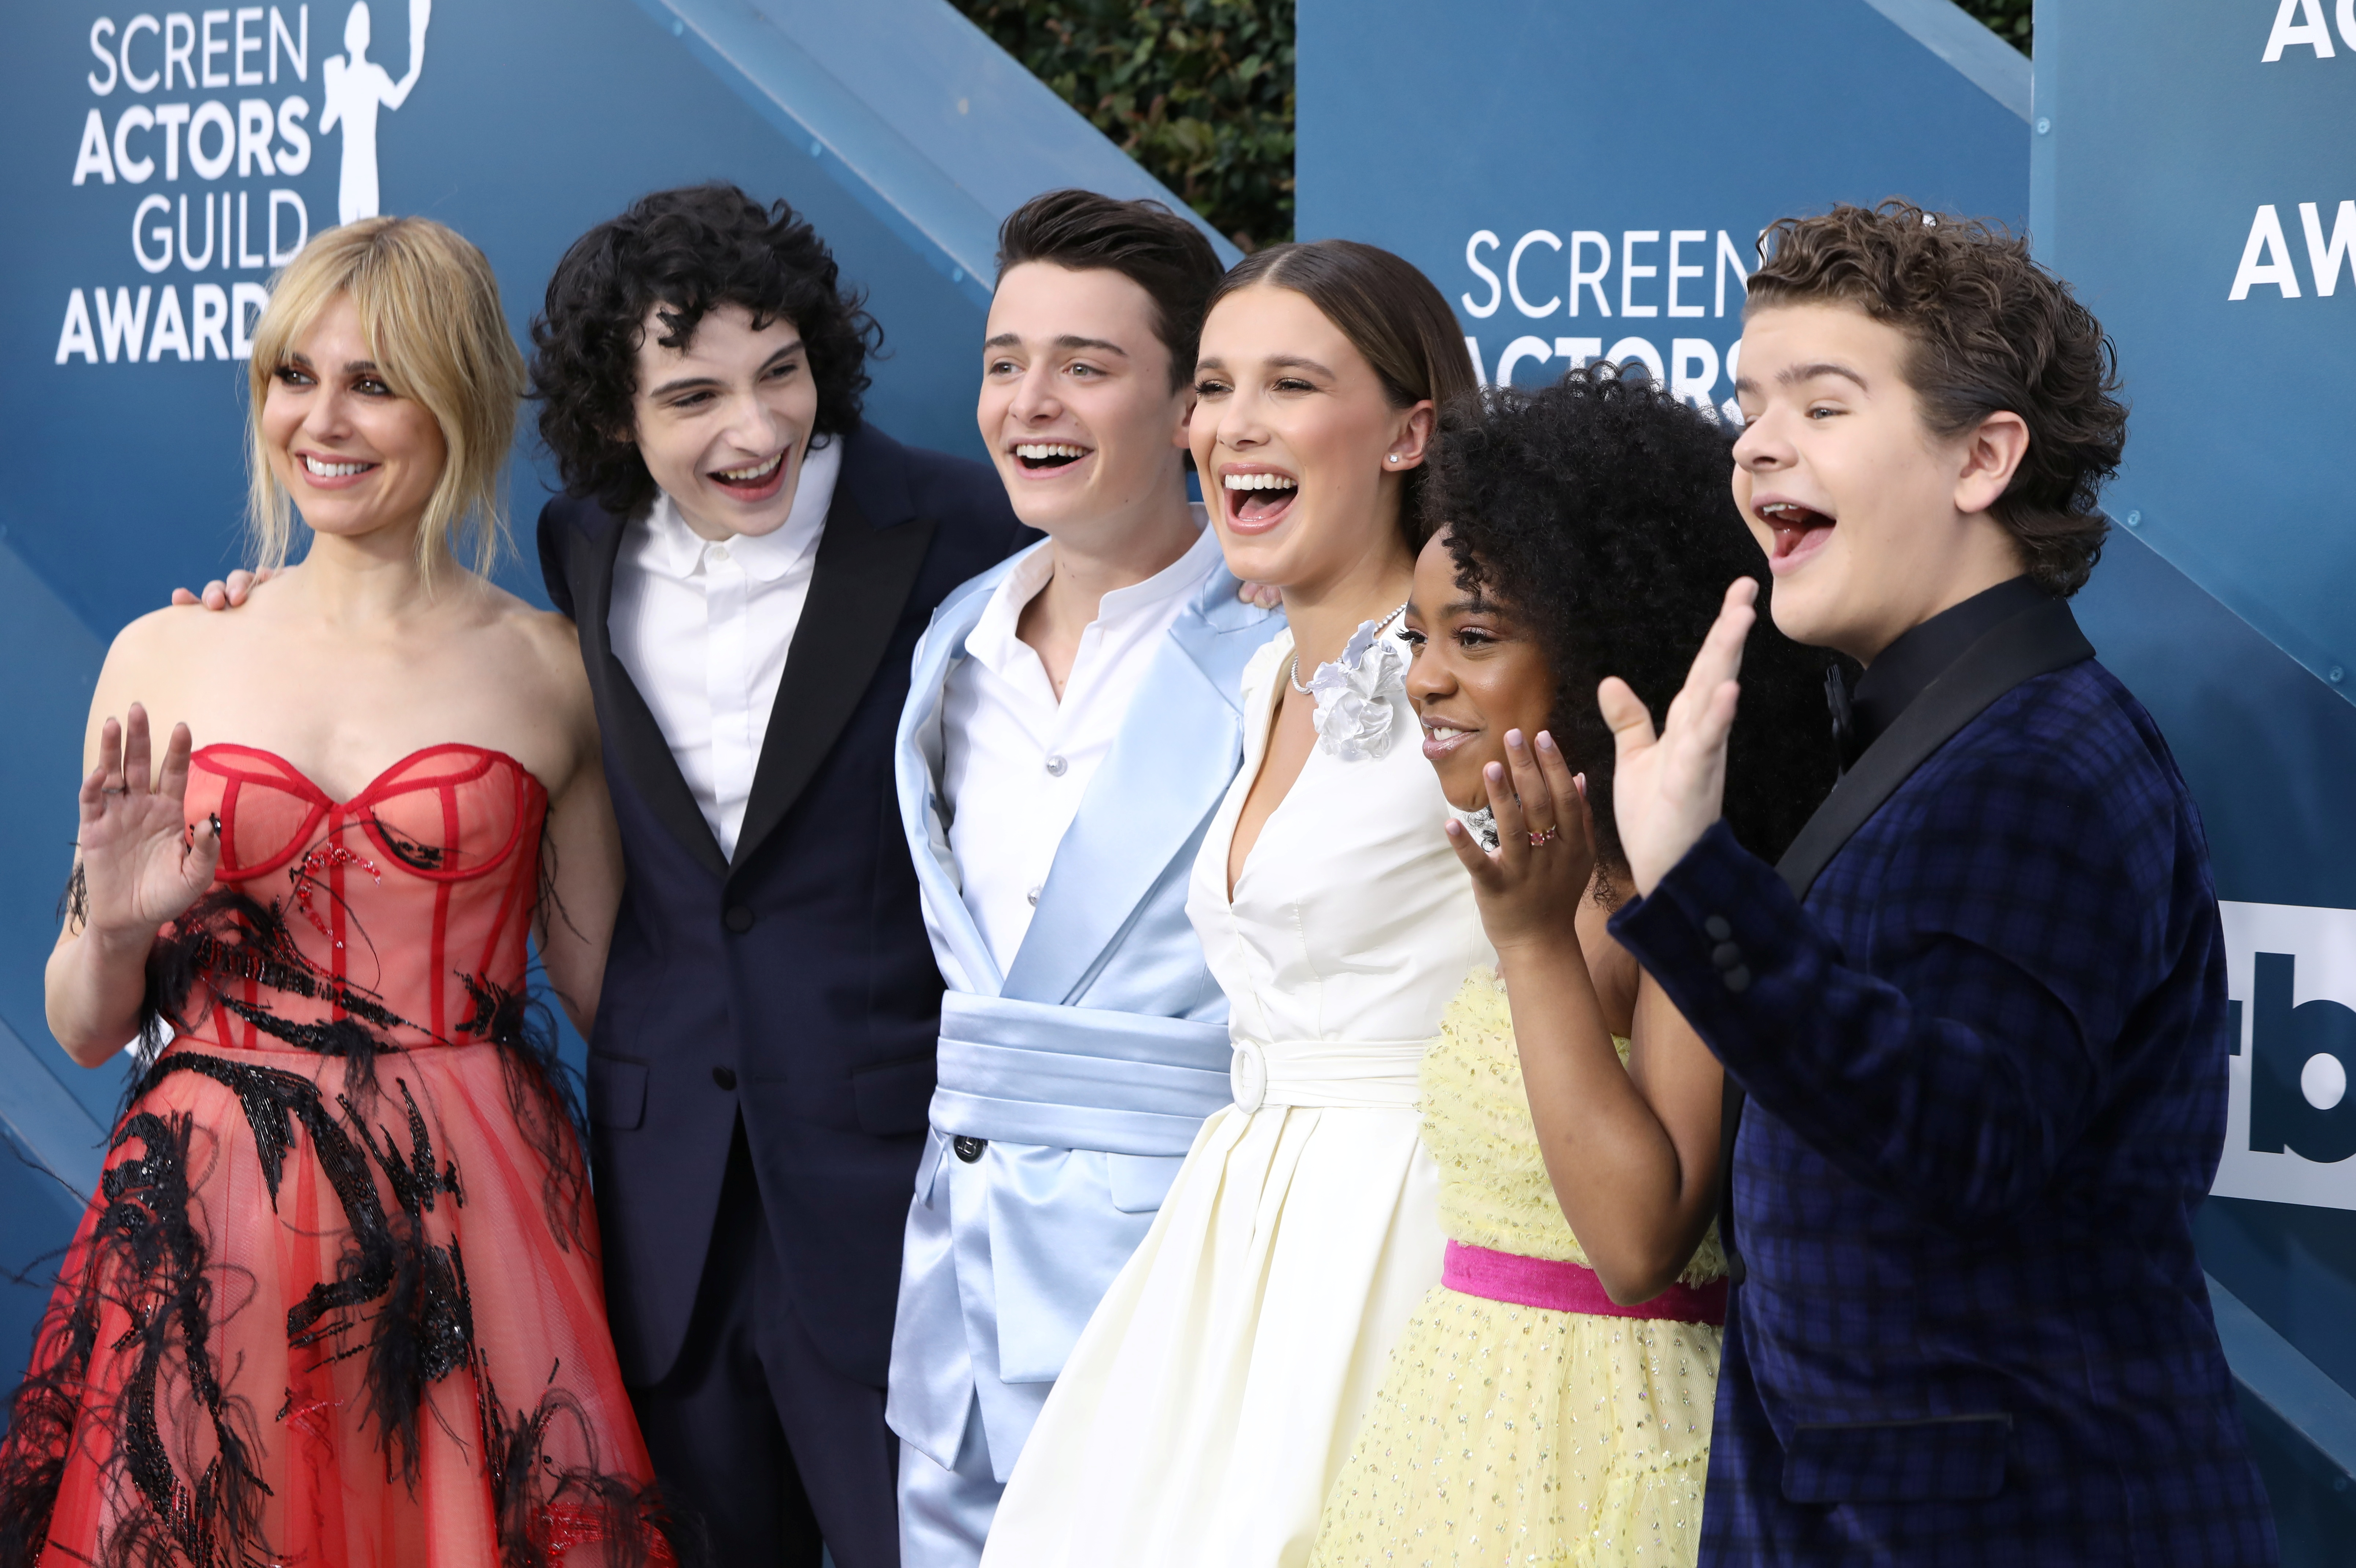 26th Screen Actors Guild Awards – Arrivals – Los Angeles, California, U.S., January 19, 2020 – Cast of Stranger Things. REUTERS/Monica Almeida/File Photo